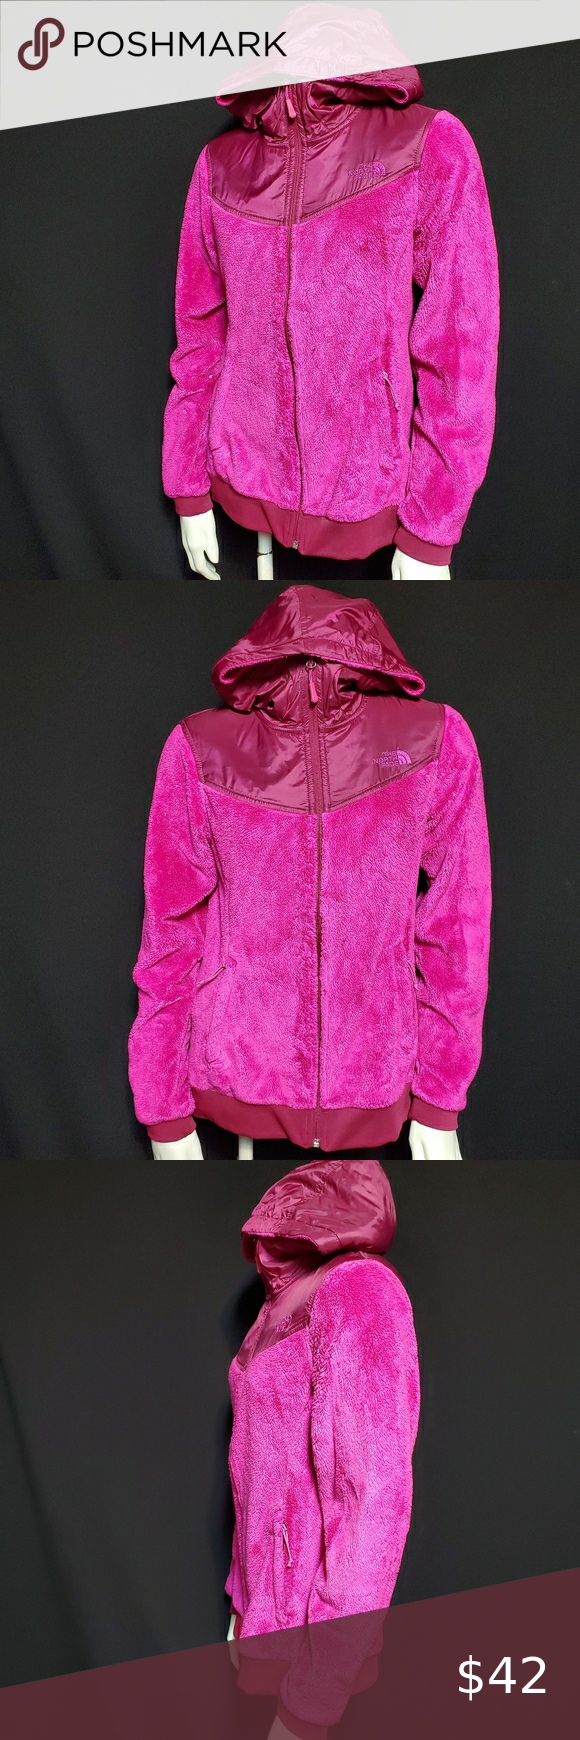 Hp The North Face Pink Jacket Grey North Face Jacket Pink North Face Jacket North Face Jacket Womens [ 1740 x 580 Pixel ]